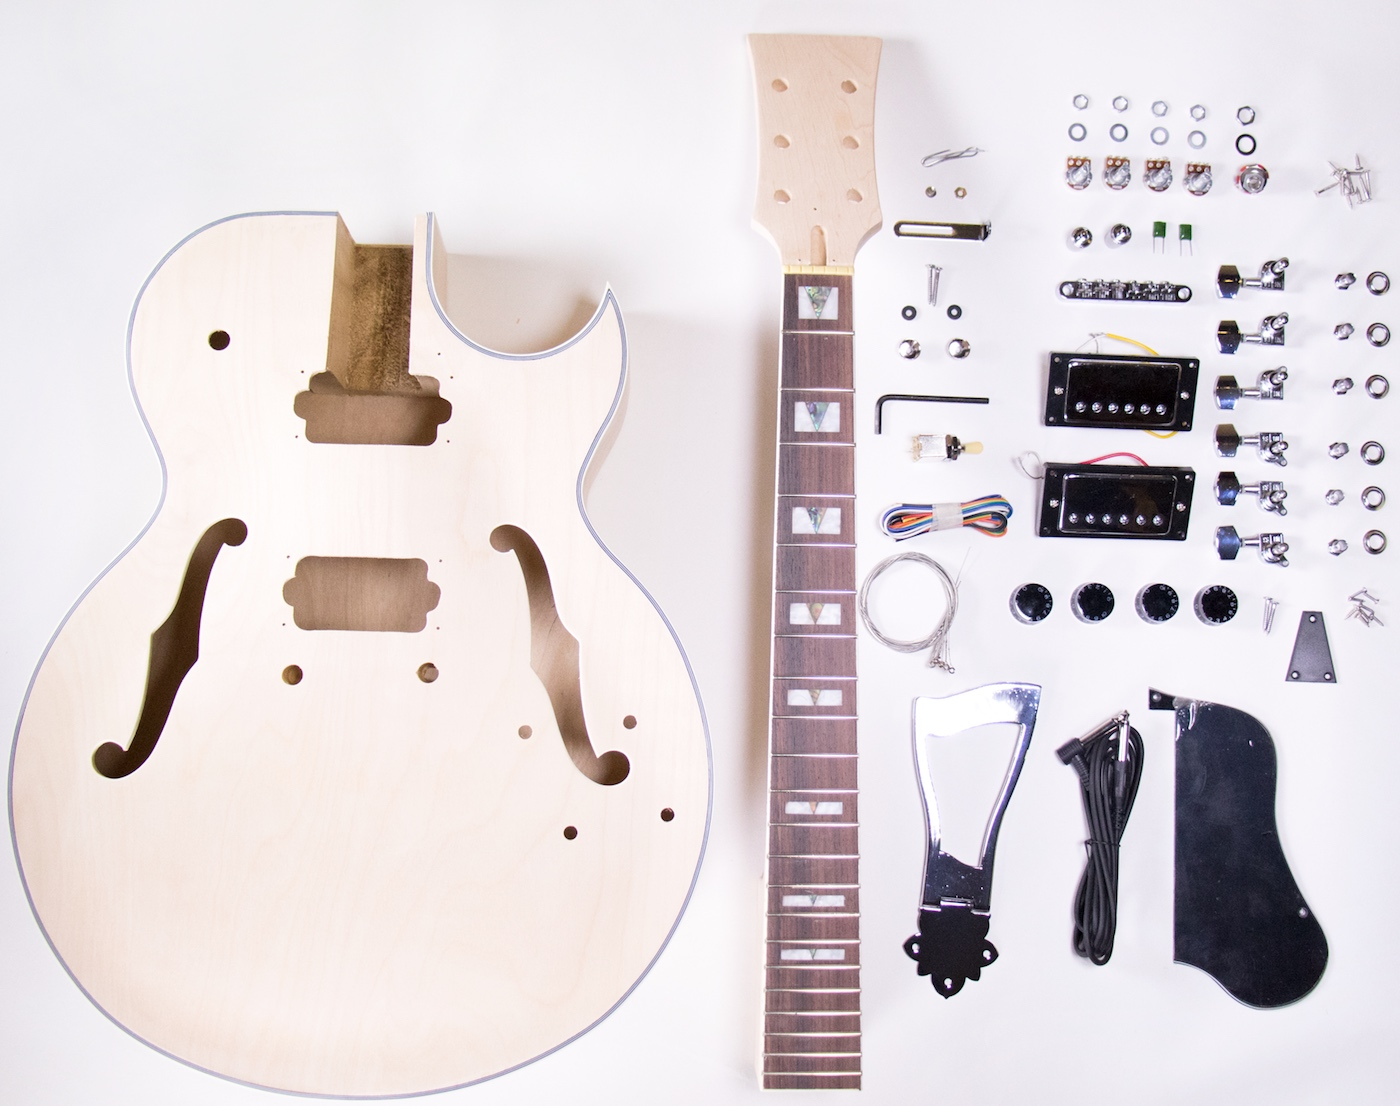 The Best Diy Guitar Kits Electric All Under 250 2018 Gearank Is Fender 5way Switch That Found On Some Of Their Guitars Thefretwire Kit 175 Jazz Style